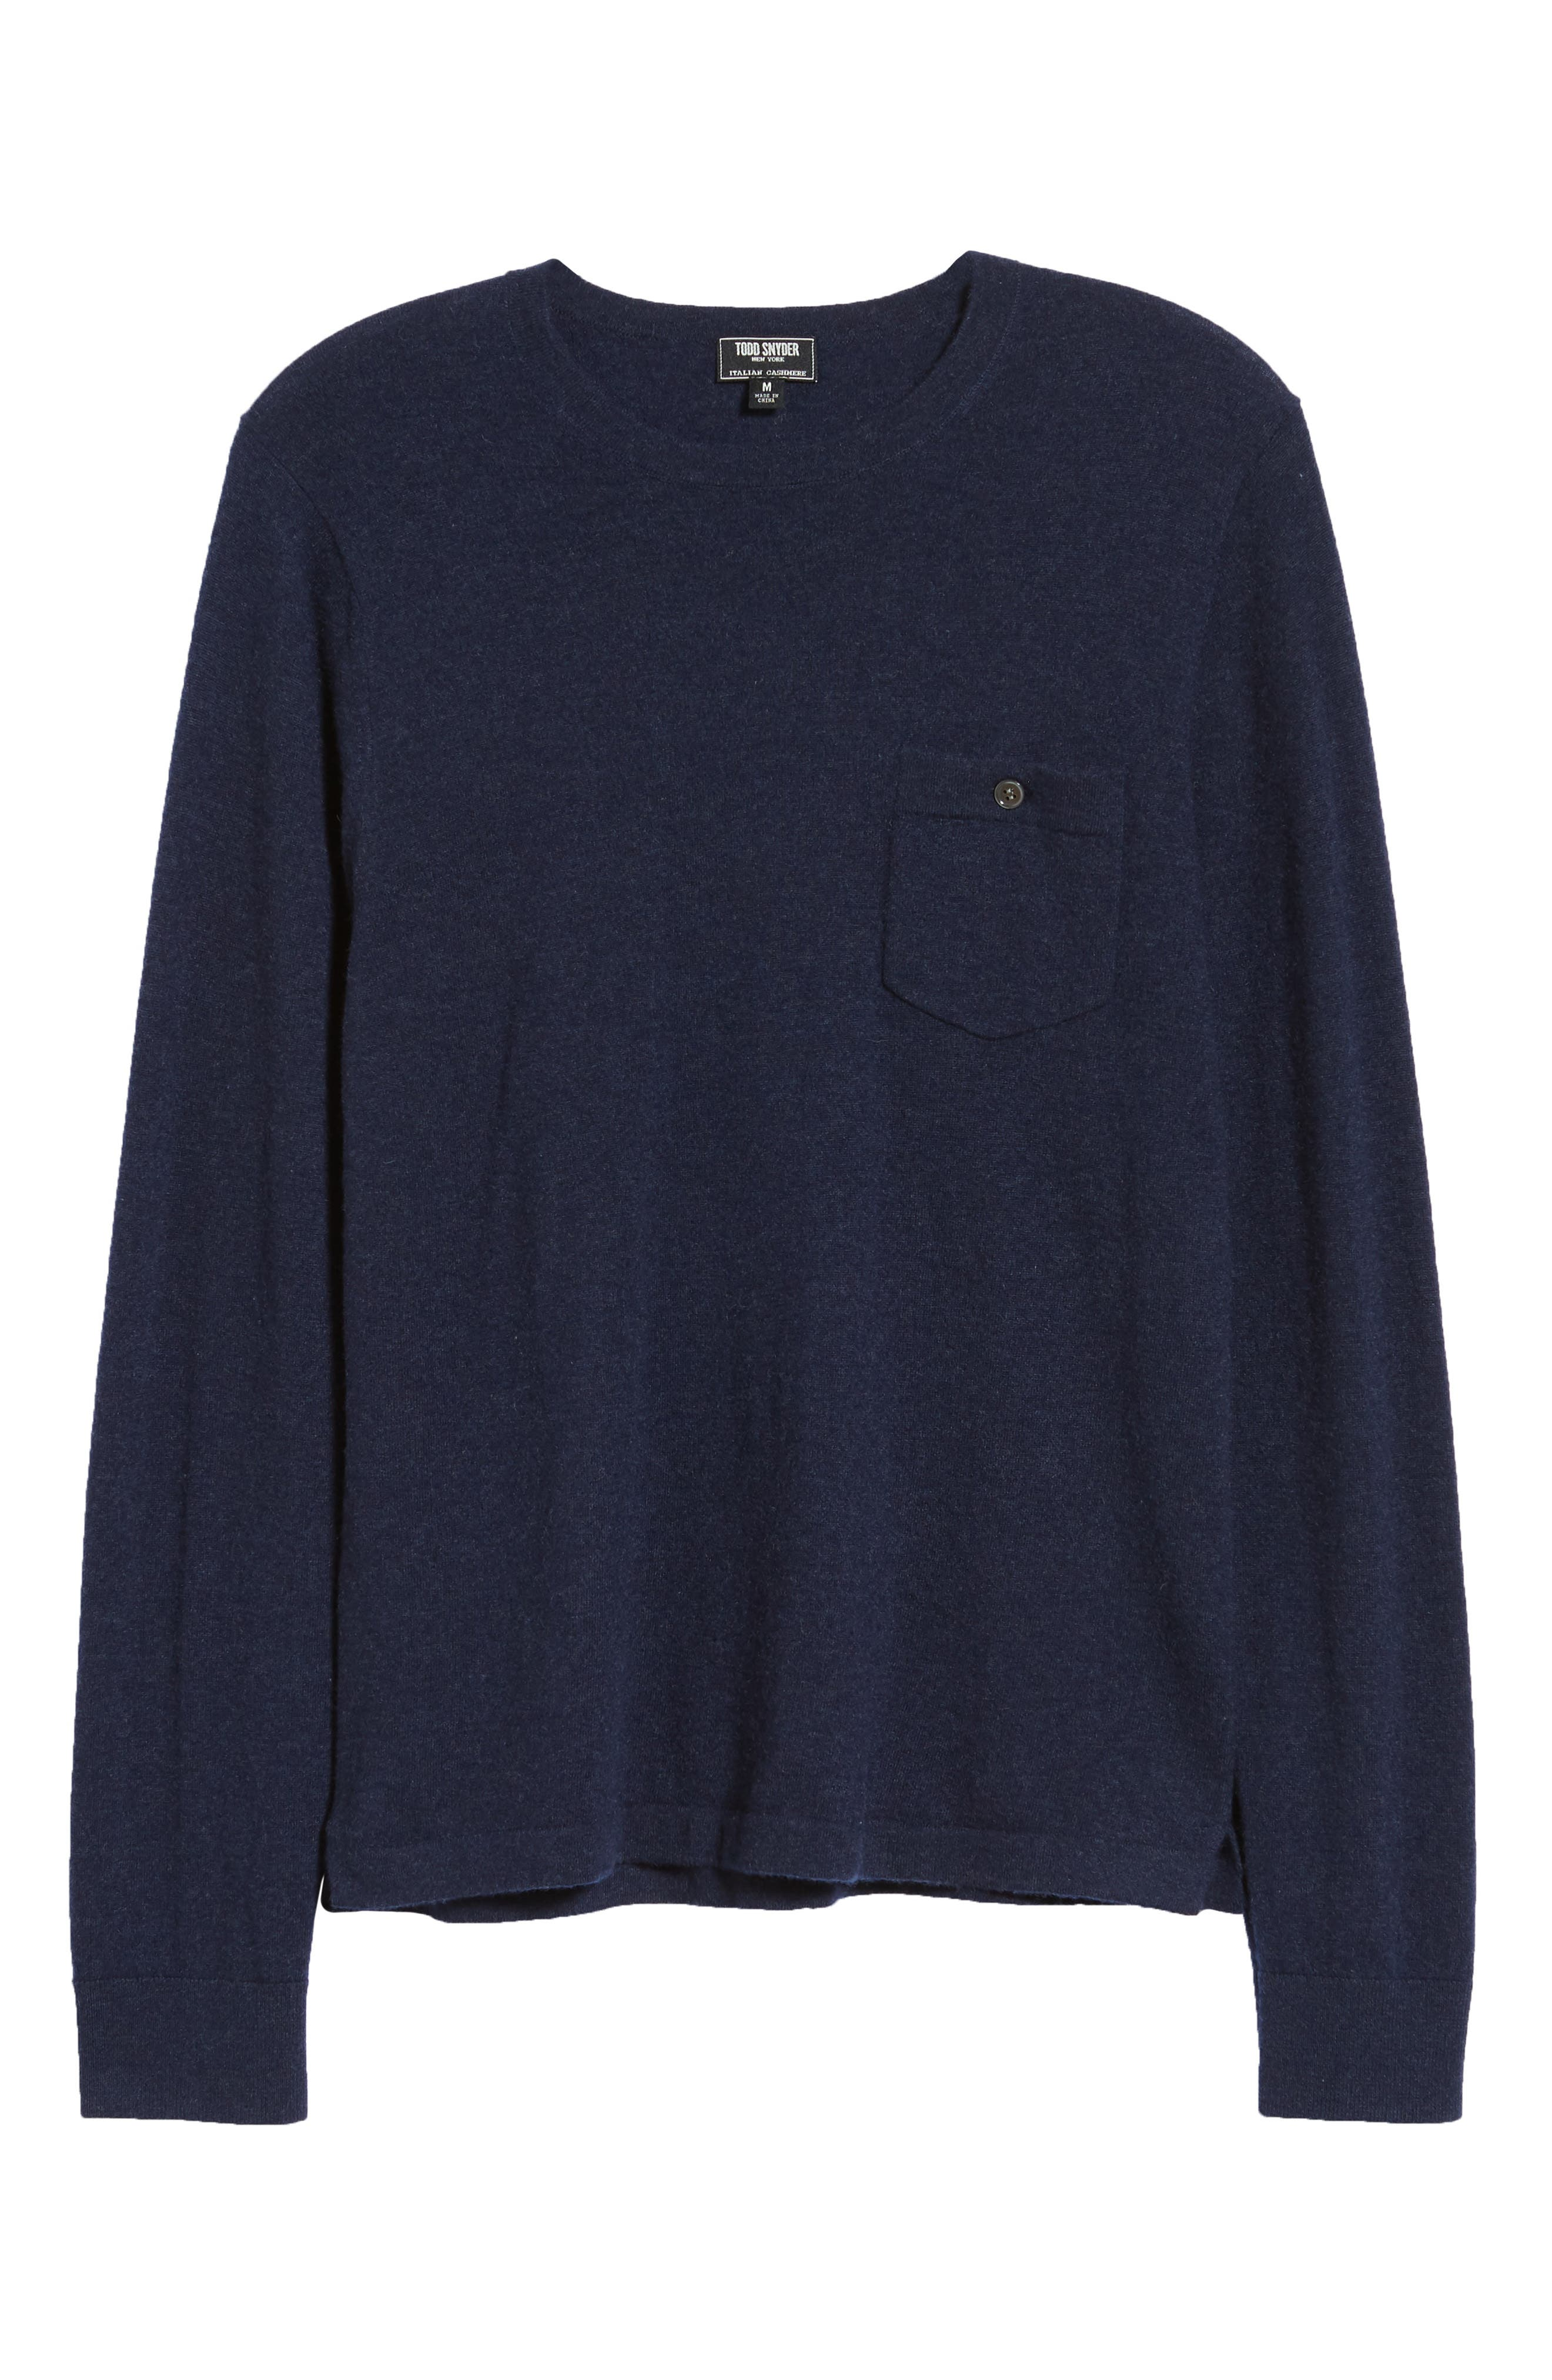 Cashmere Sweater,                             Alternate thumbnail 6, color,                             NAVY/ GREY